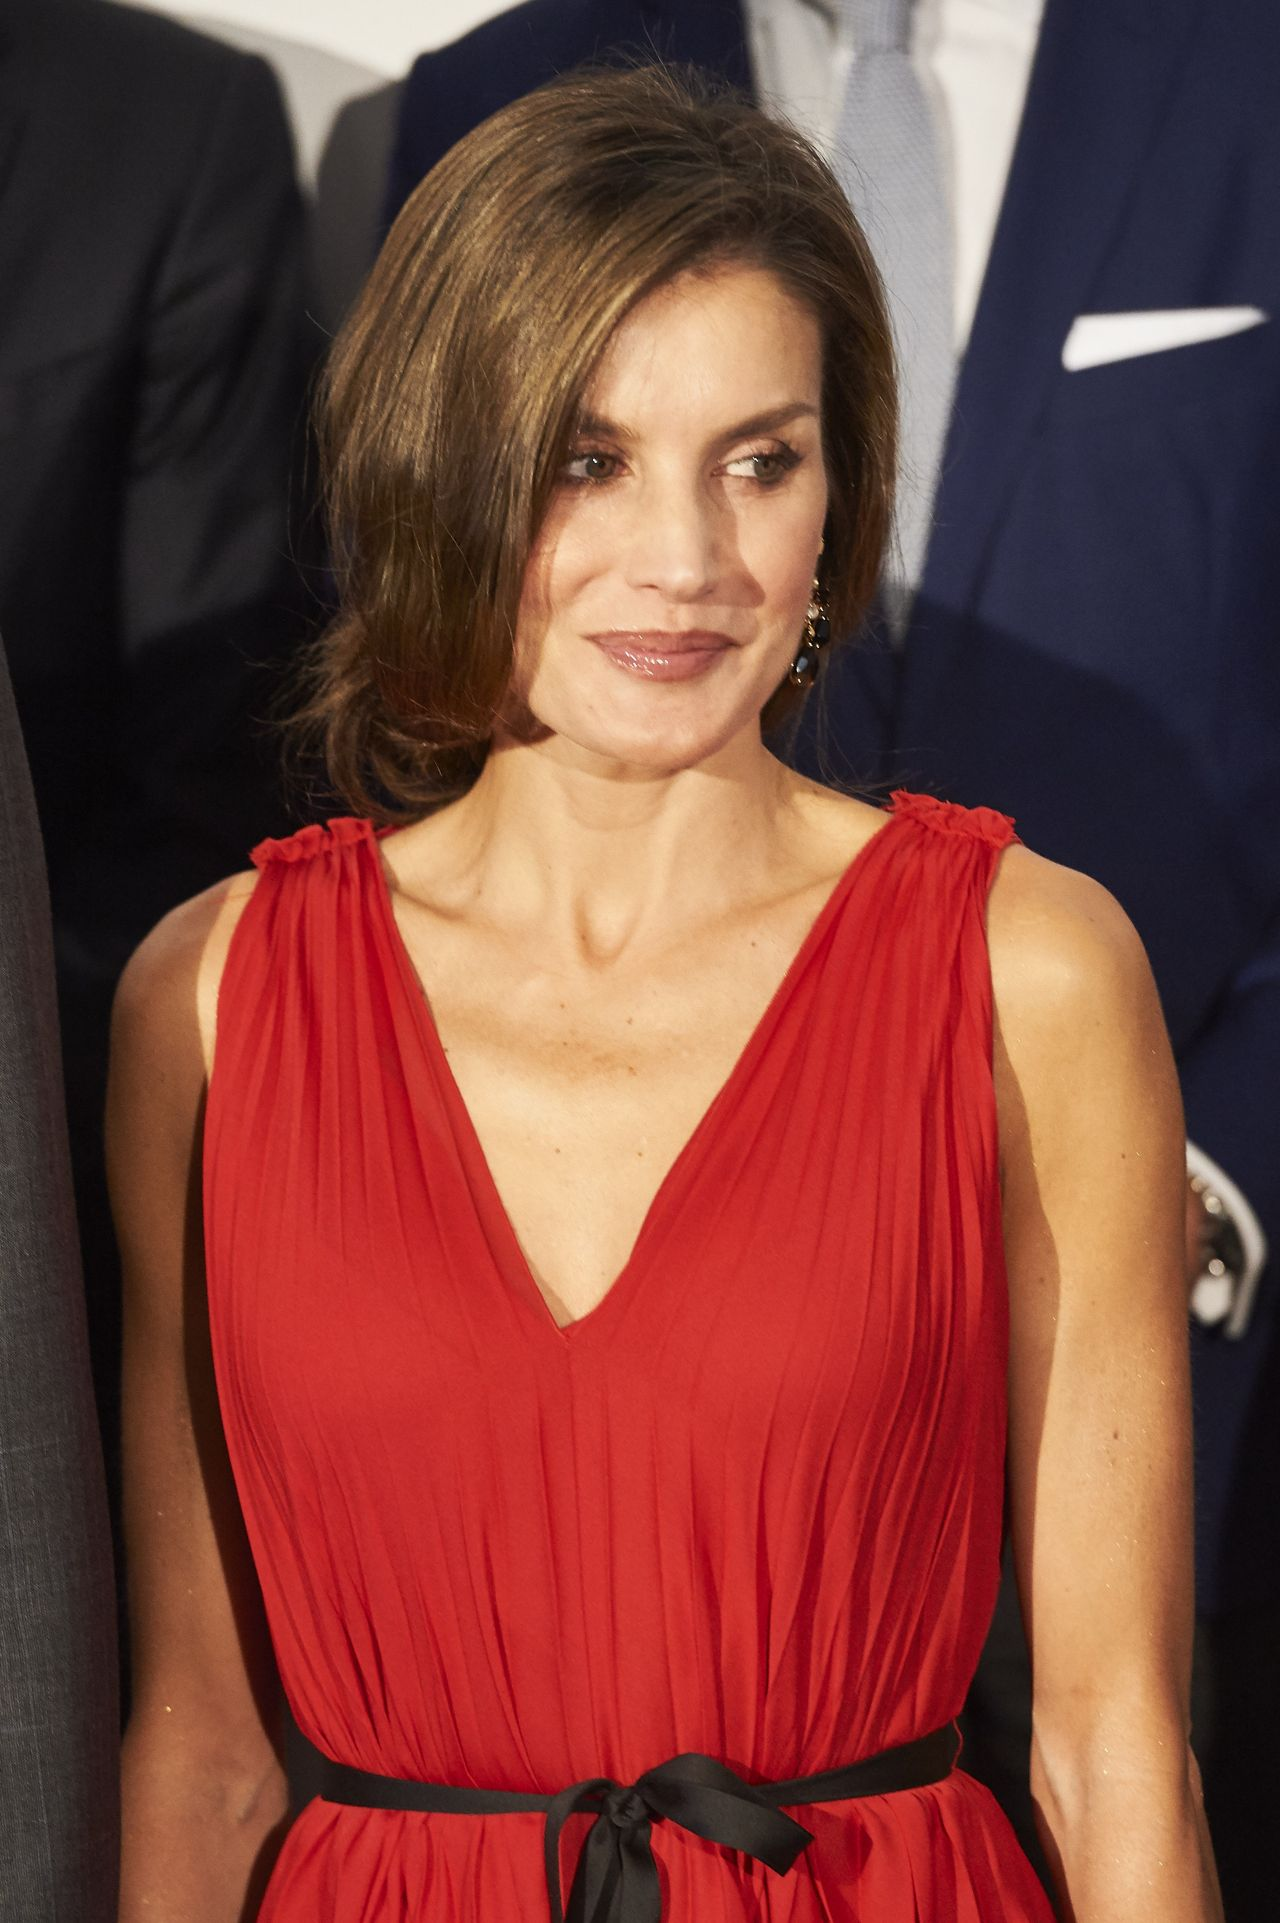 On To College Show 09 22 2017 >> Queen Letizia of Spain at the Teatro Real in Madrid 09/21/2017